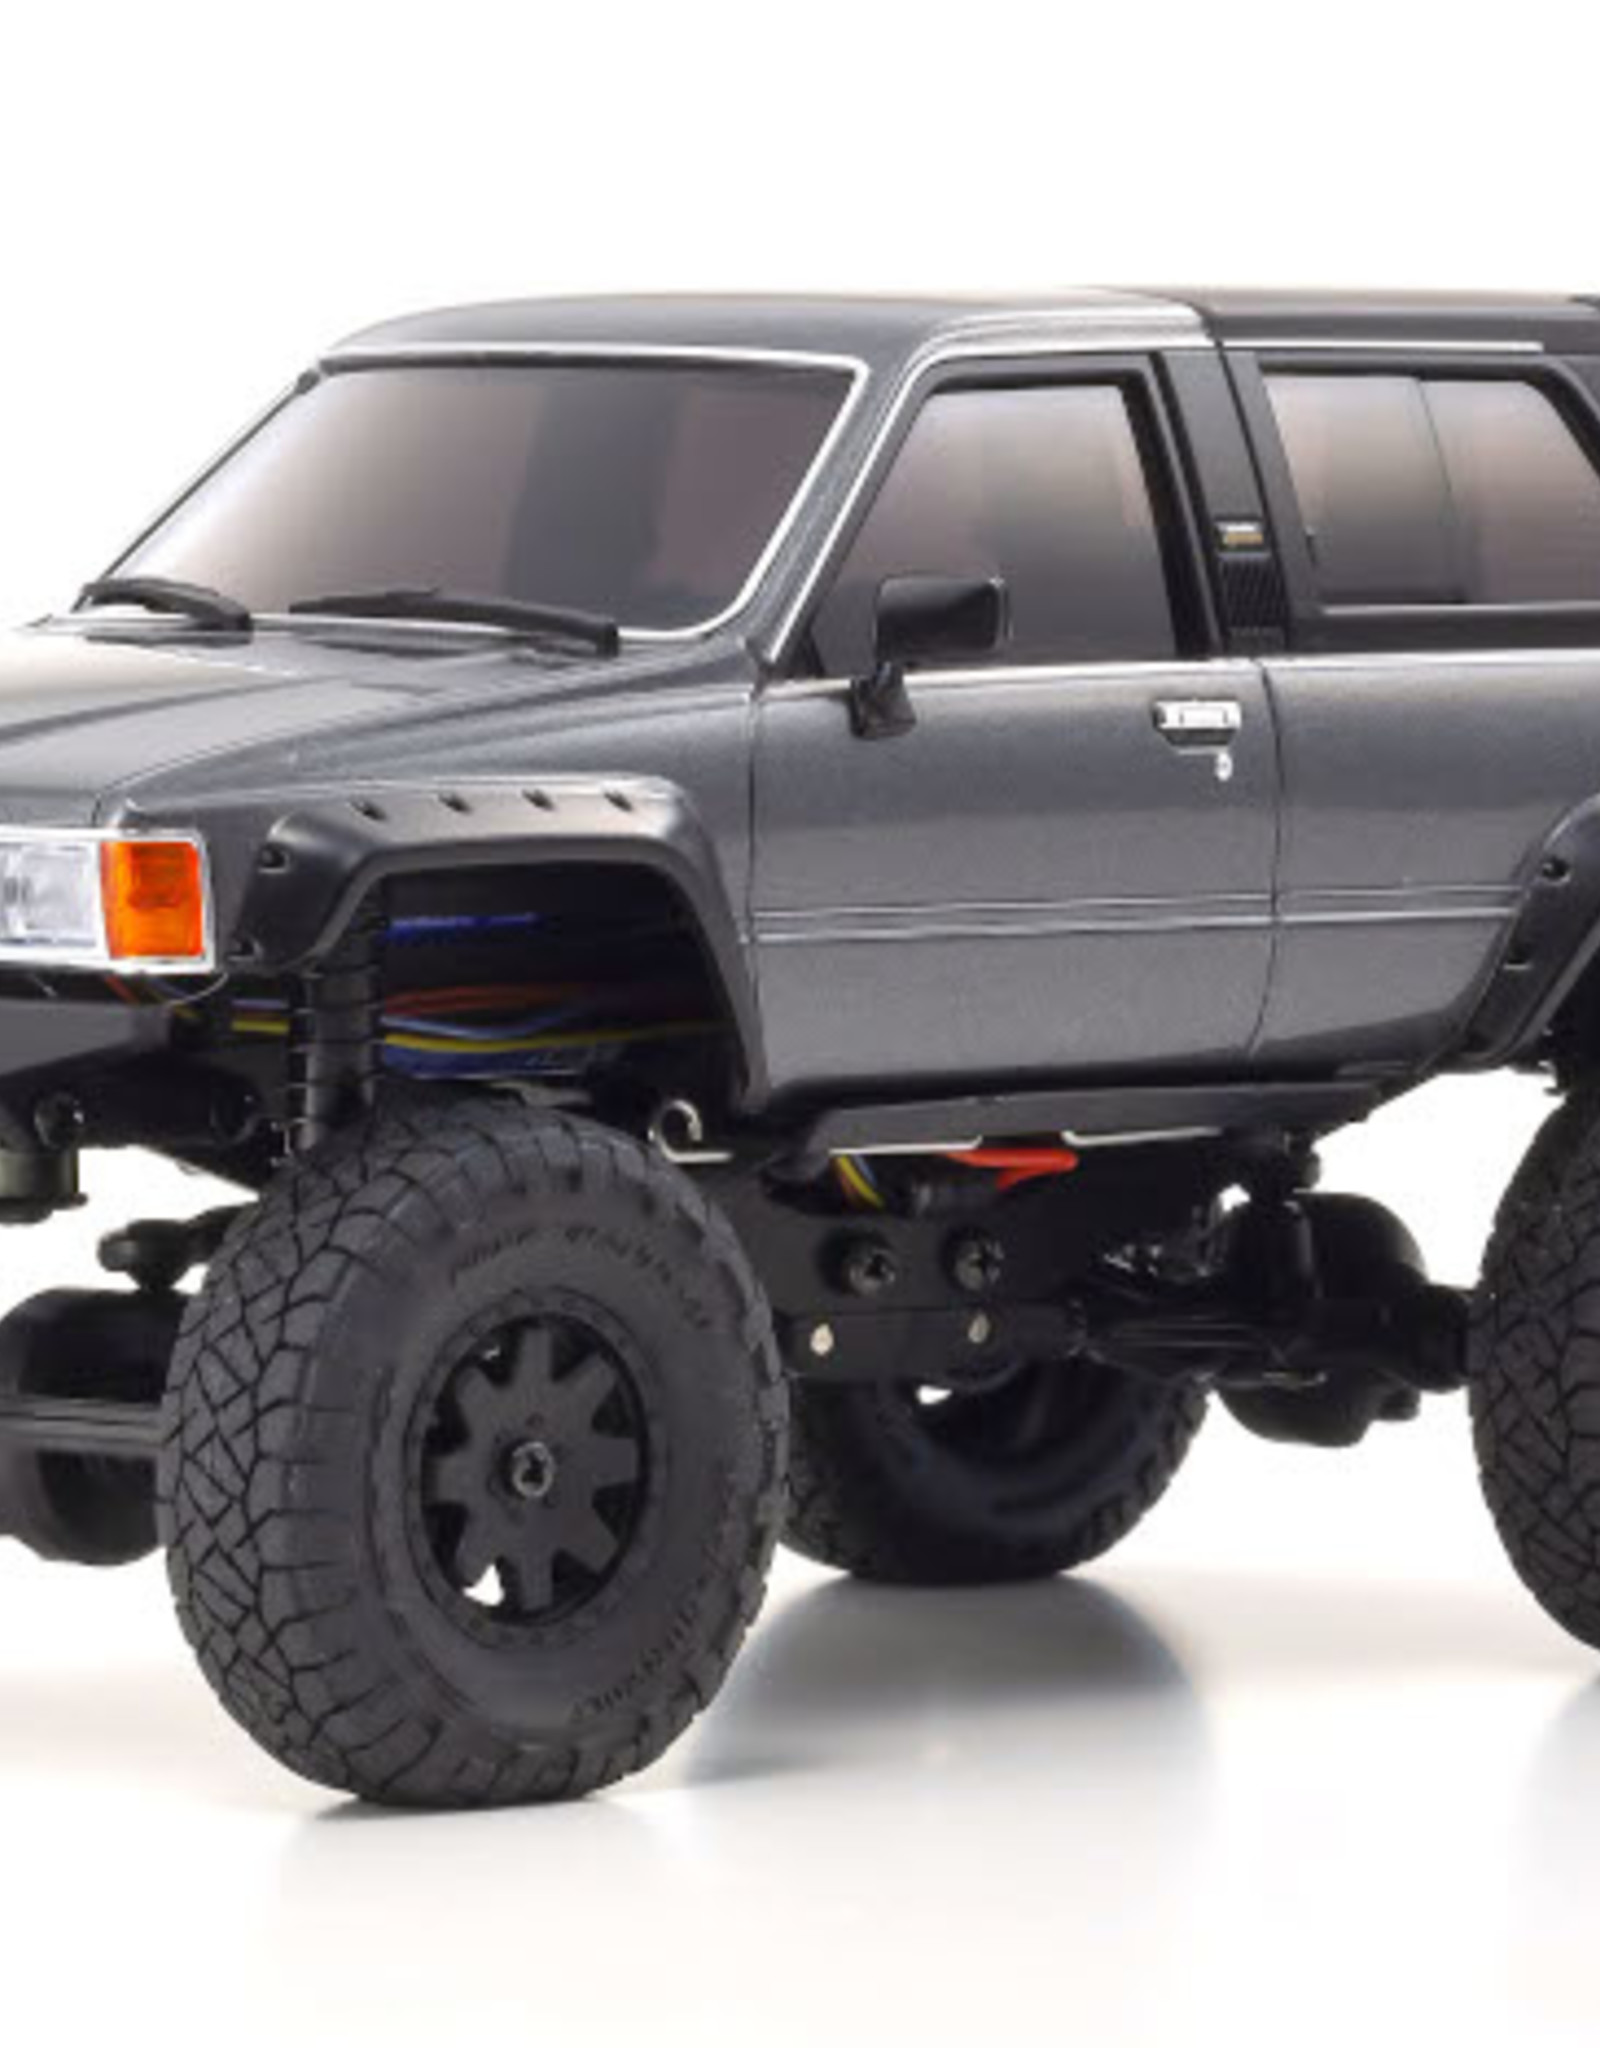 Kyosho Kyosho 32522GM Mini-Z 4X4 Toyota 4 Runner (HiLux Surf) Dark Metallic Grey Ready Set